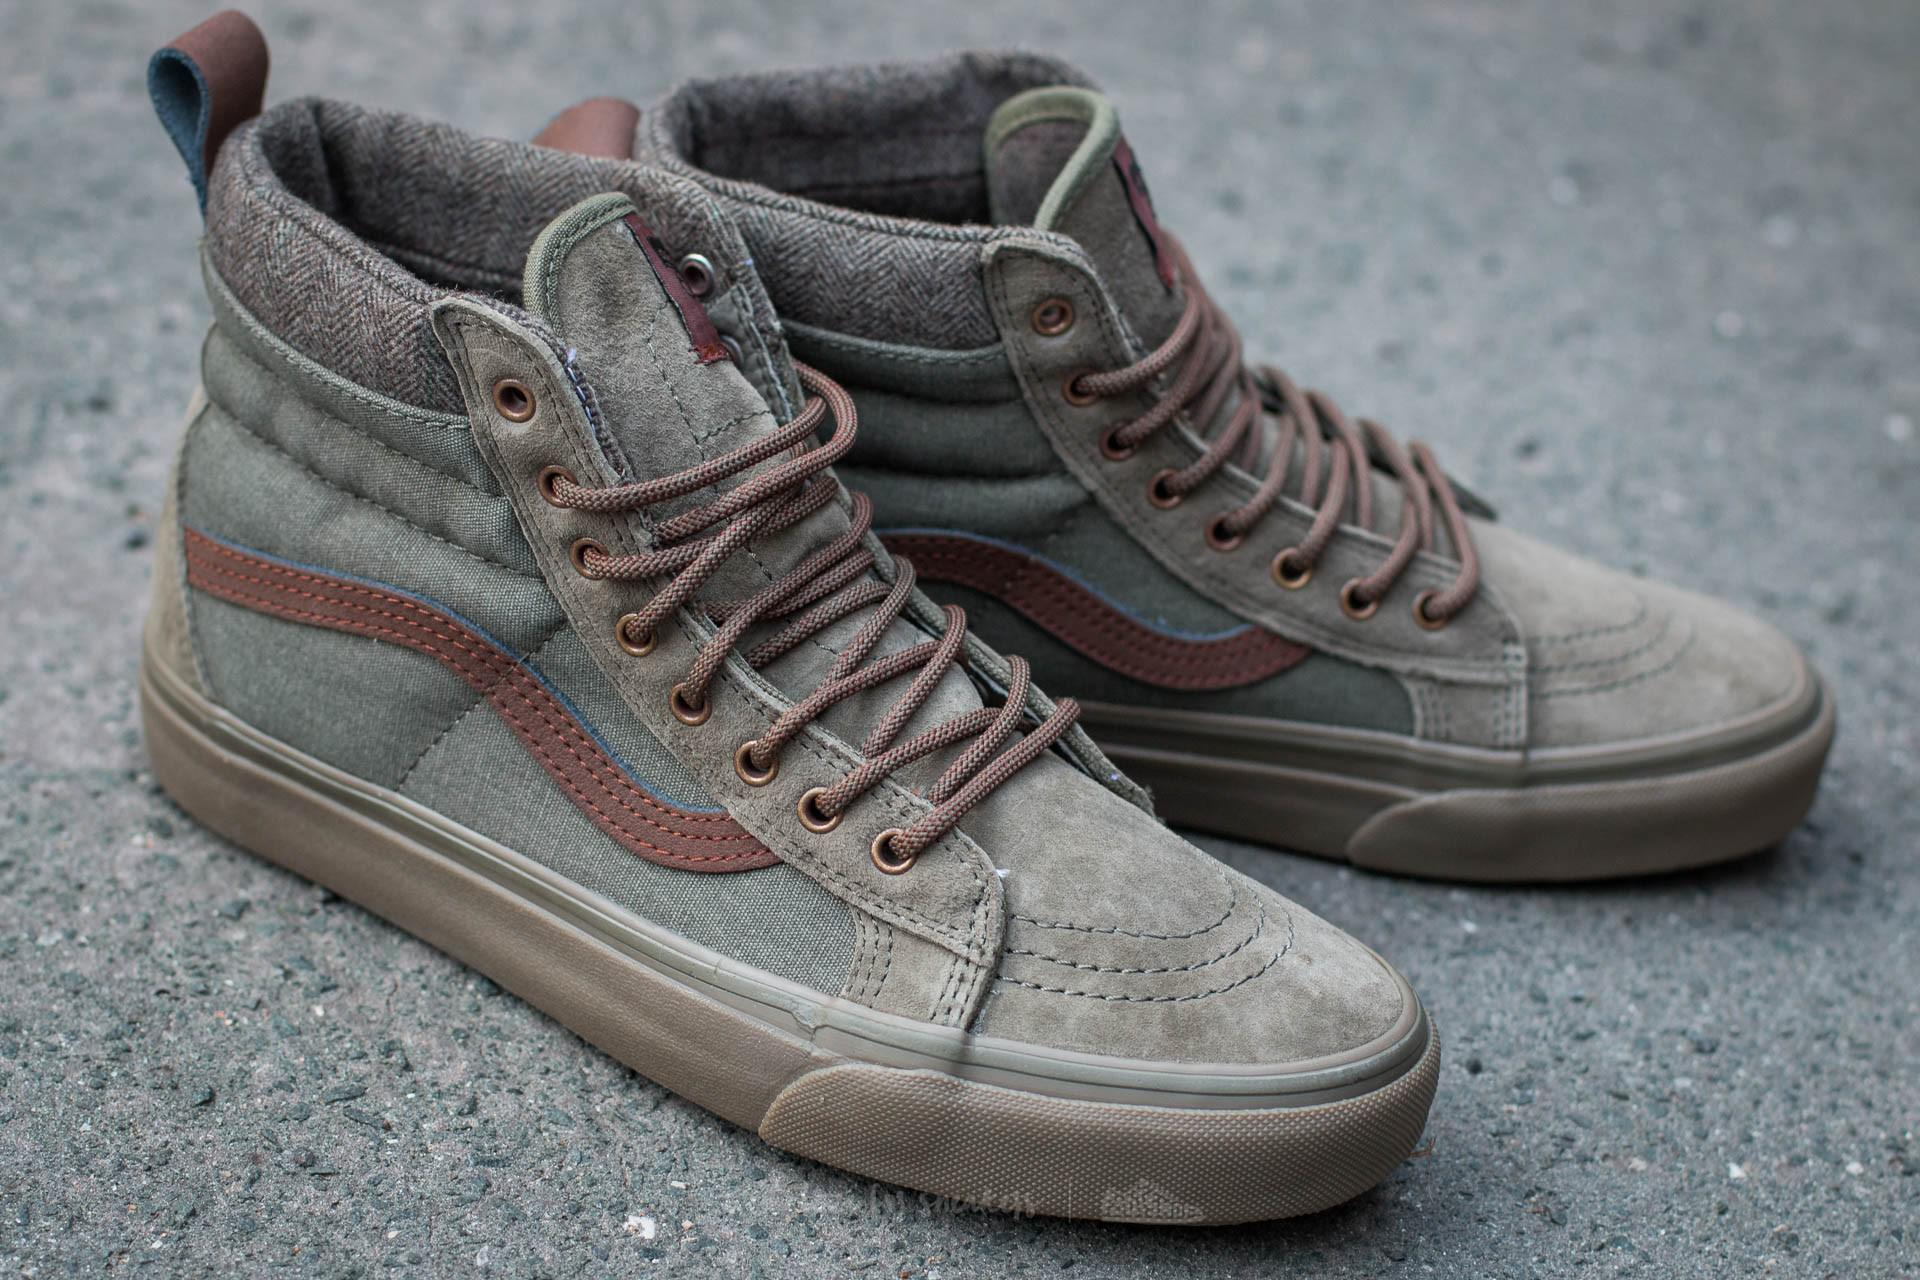 5b087d7178 Lyst - Vans Sk8-hi Mte Dx (mte) Ivy Green  Dark Gum for Men